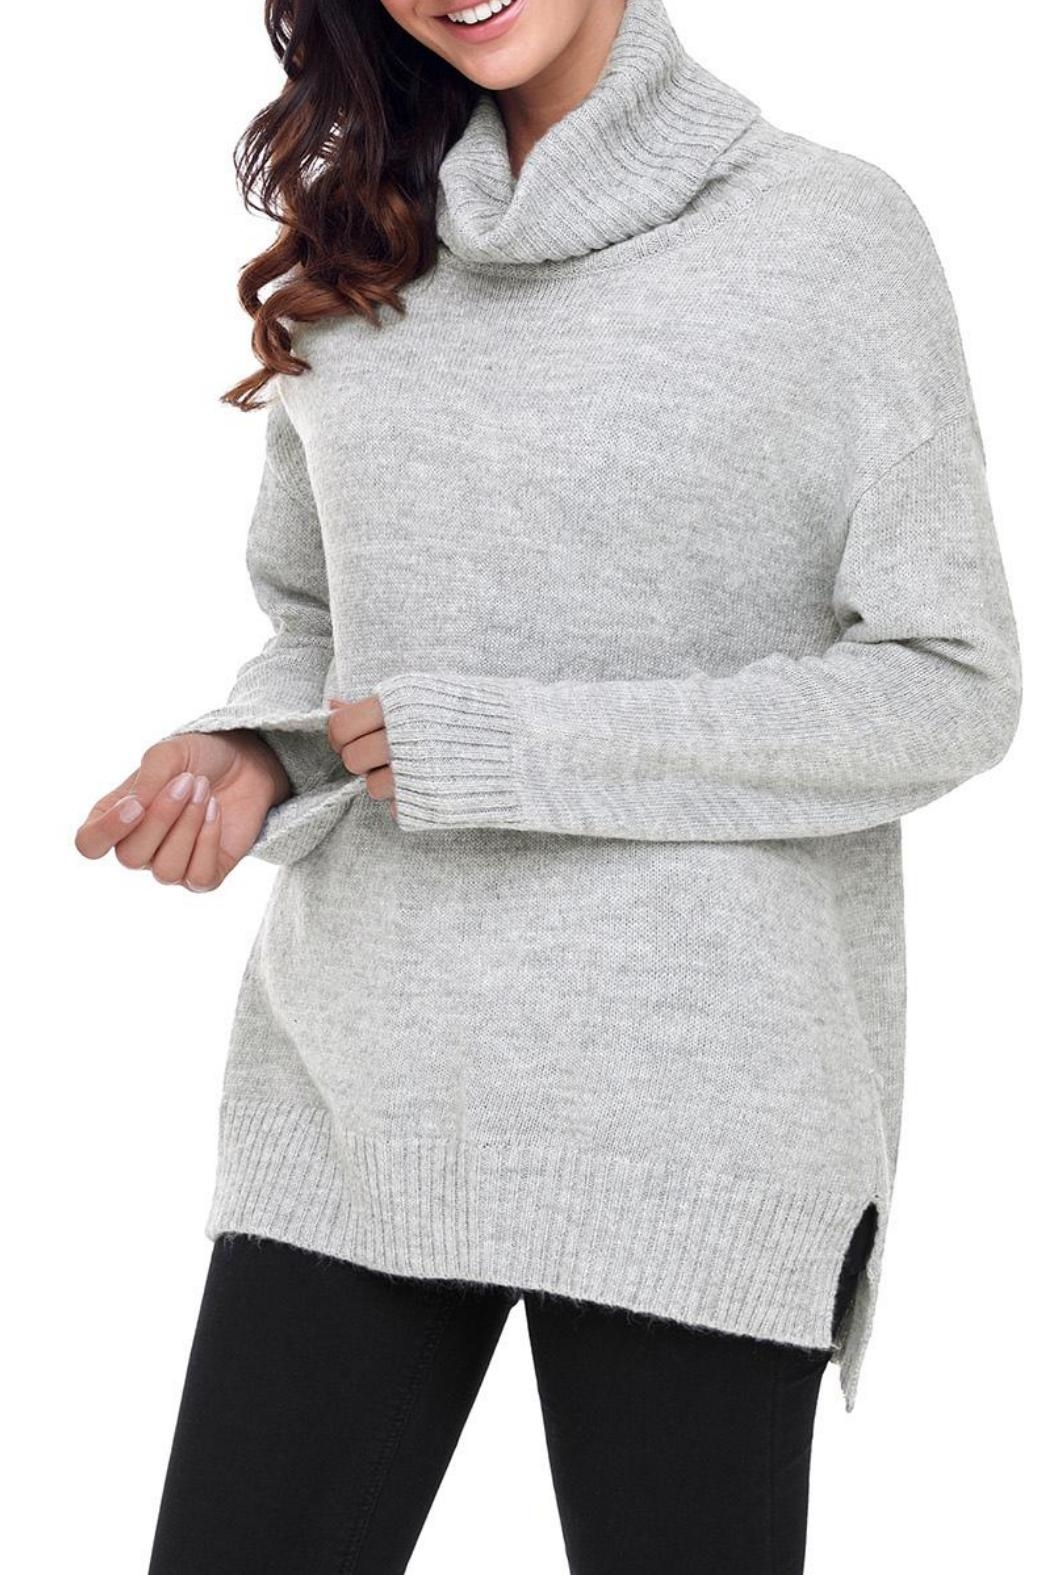 Unbranded Gray Turtleneck Sweater - Main Image